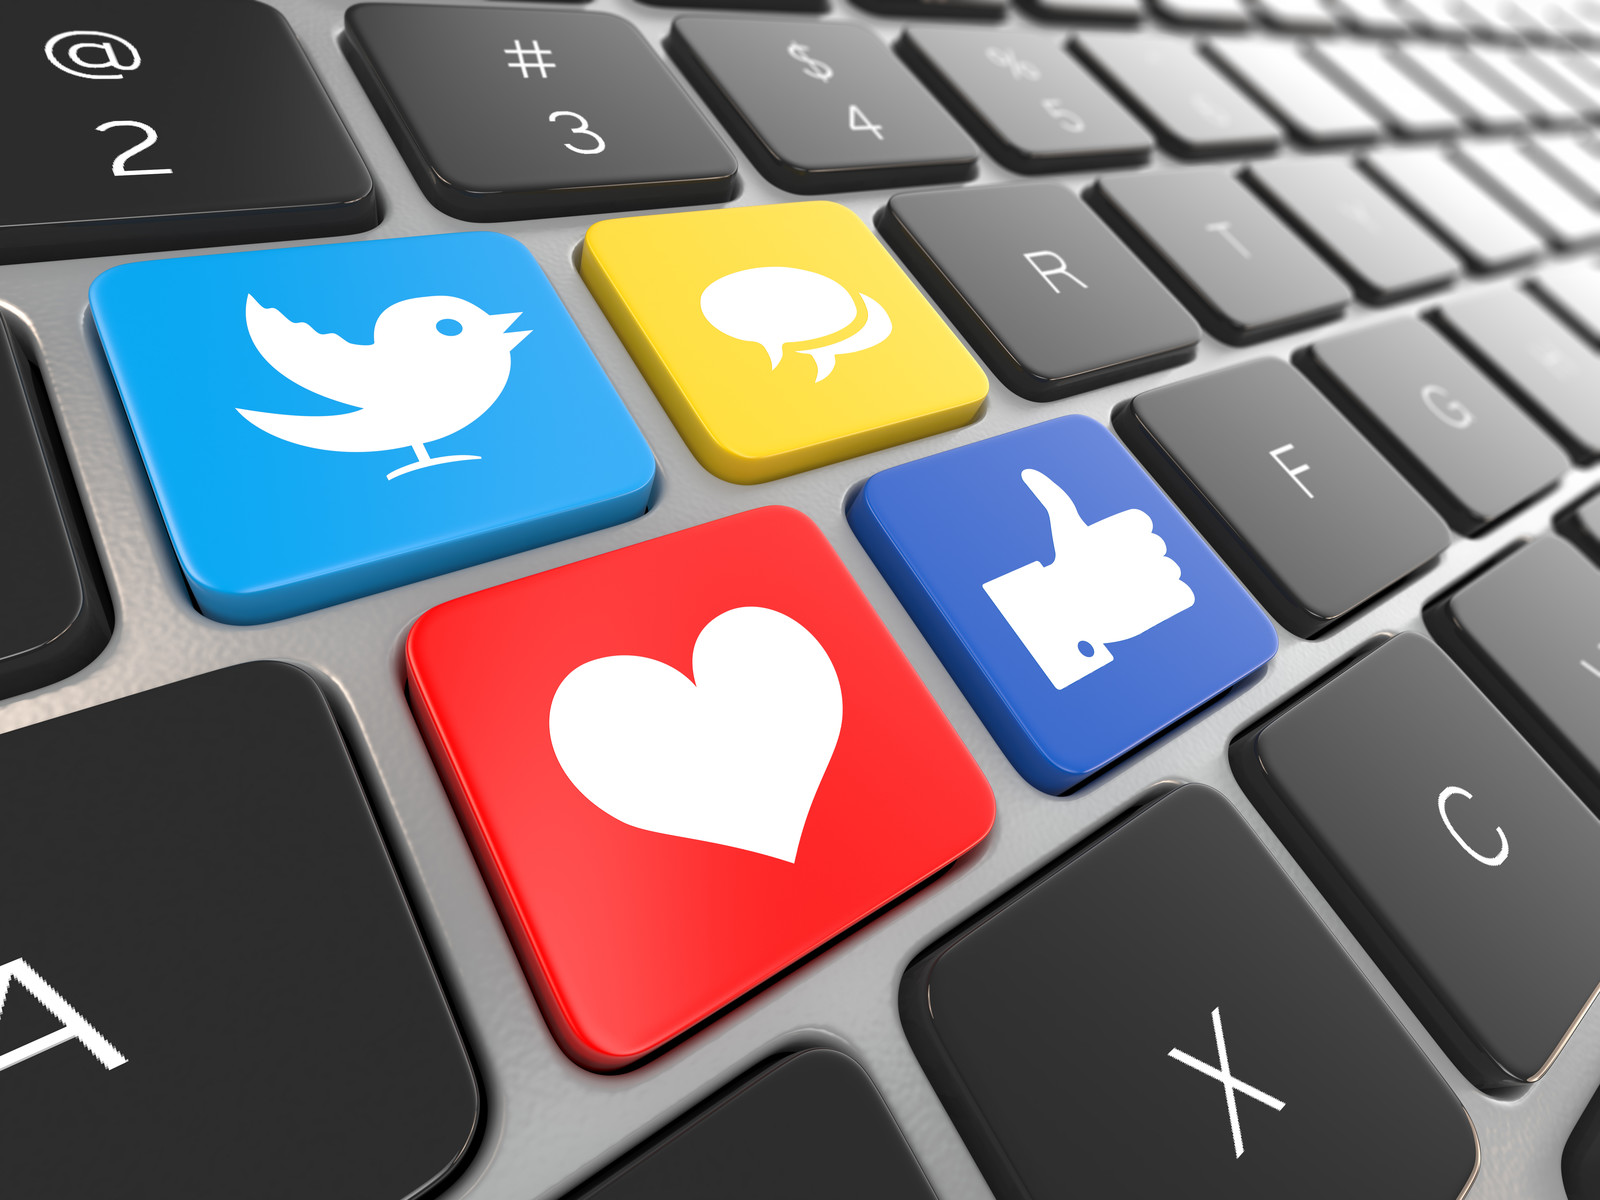 Laptop key board with four bright colored keys with a twitter symbol, the Love sympbol, a chat symbol, and a thumbs up All representing social media